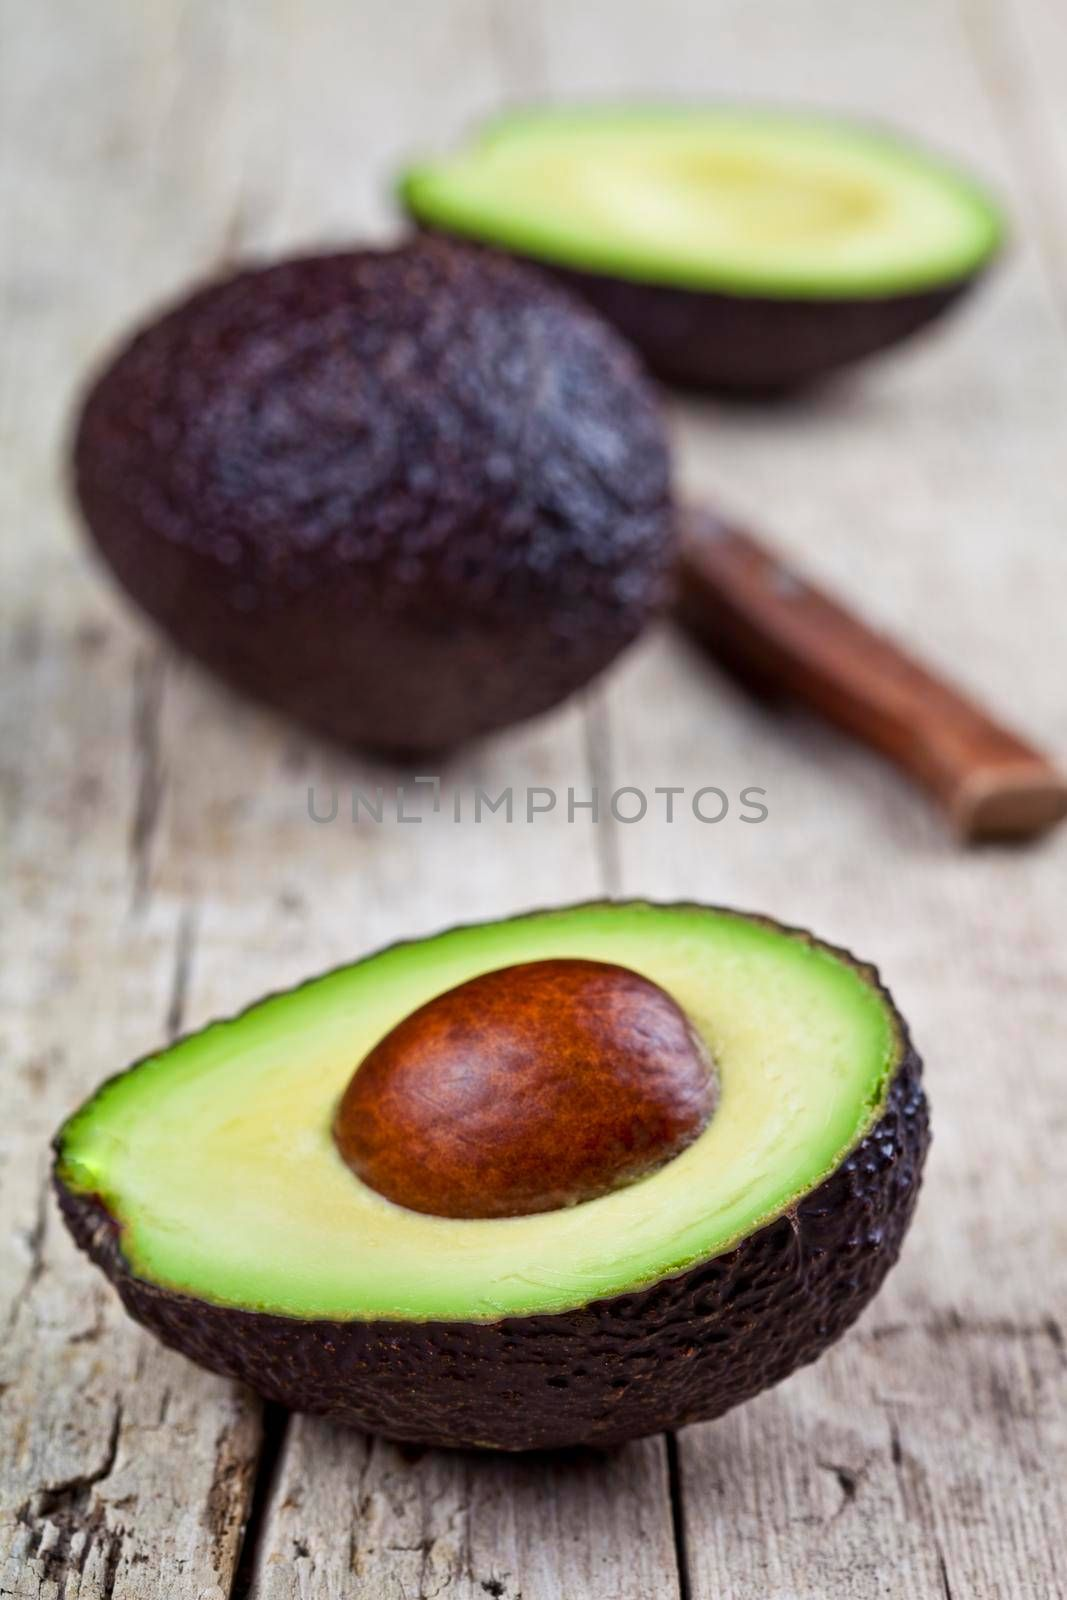 Fresh avocado and knife on old wooden table background. Fresh avocado halves on rustic wooden backround. Healthy food concept.